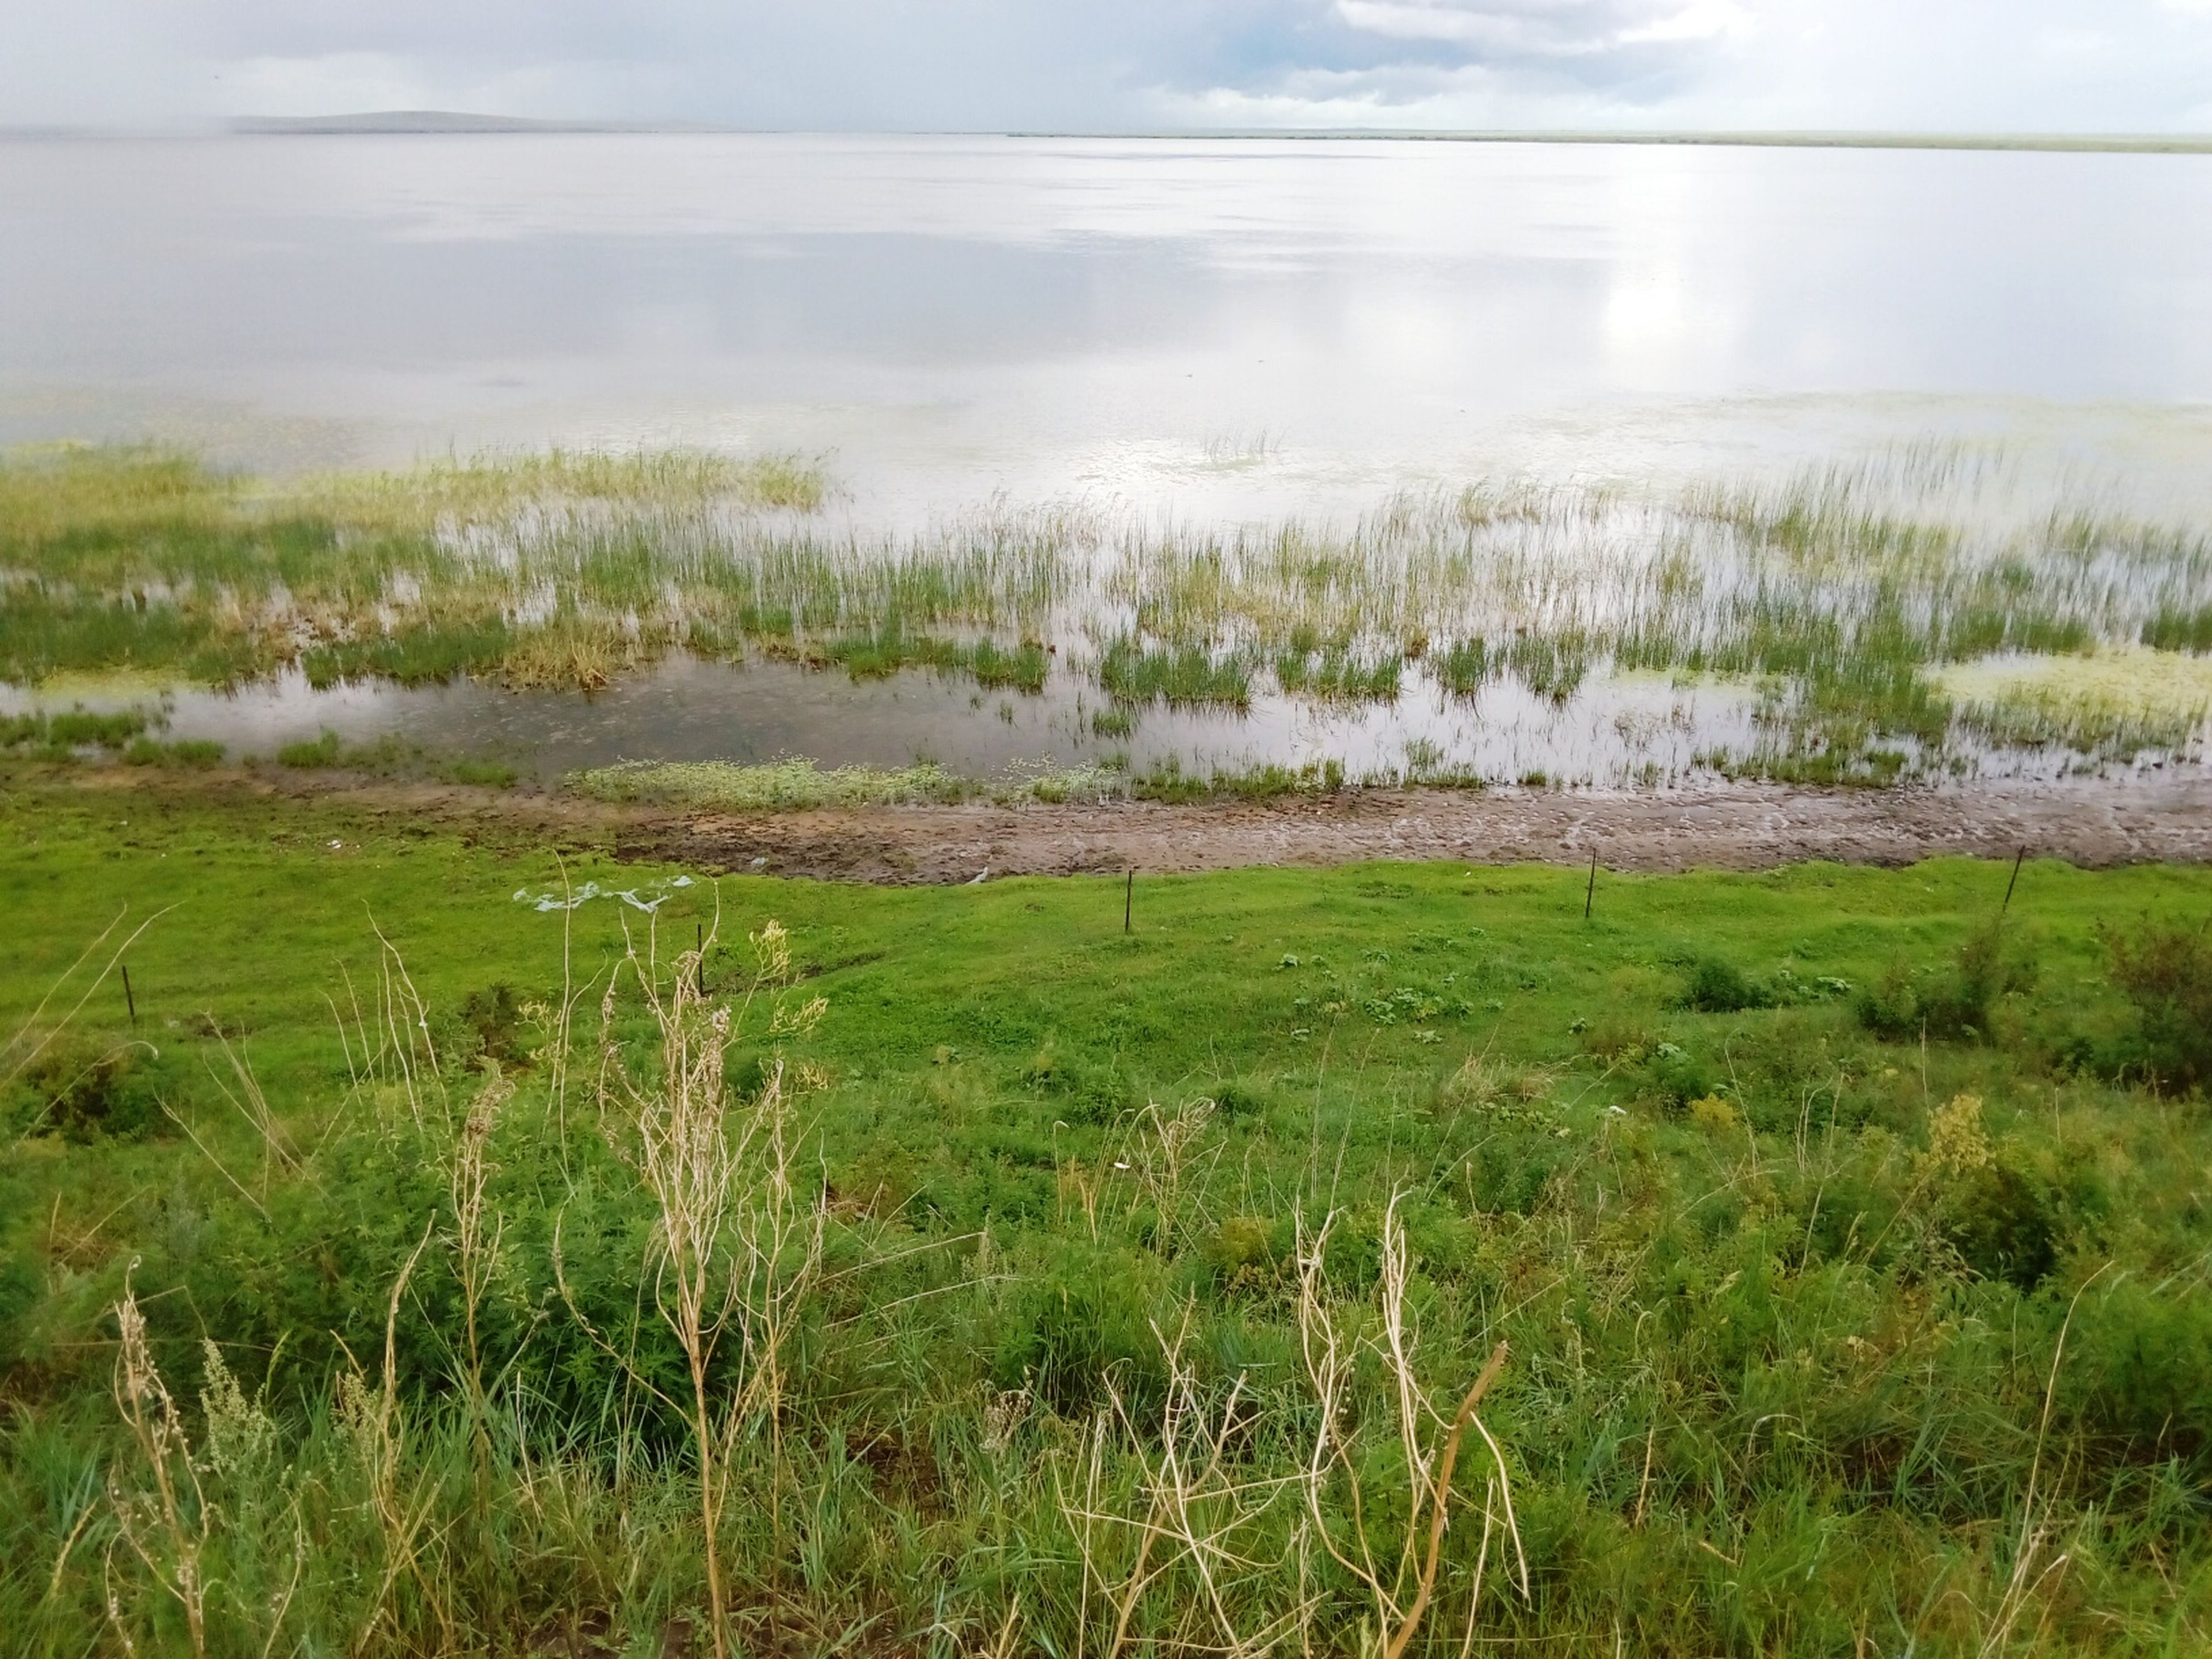 grass, tranquil scene, tranquility, water, scenics, beauty in nature, sky, nature, lake, landscape, plant, field, growth, idyllic, grassy, non-urban scene, day, cloud - sky, lakeshore, outdoors